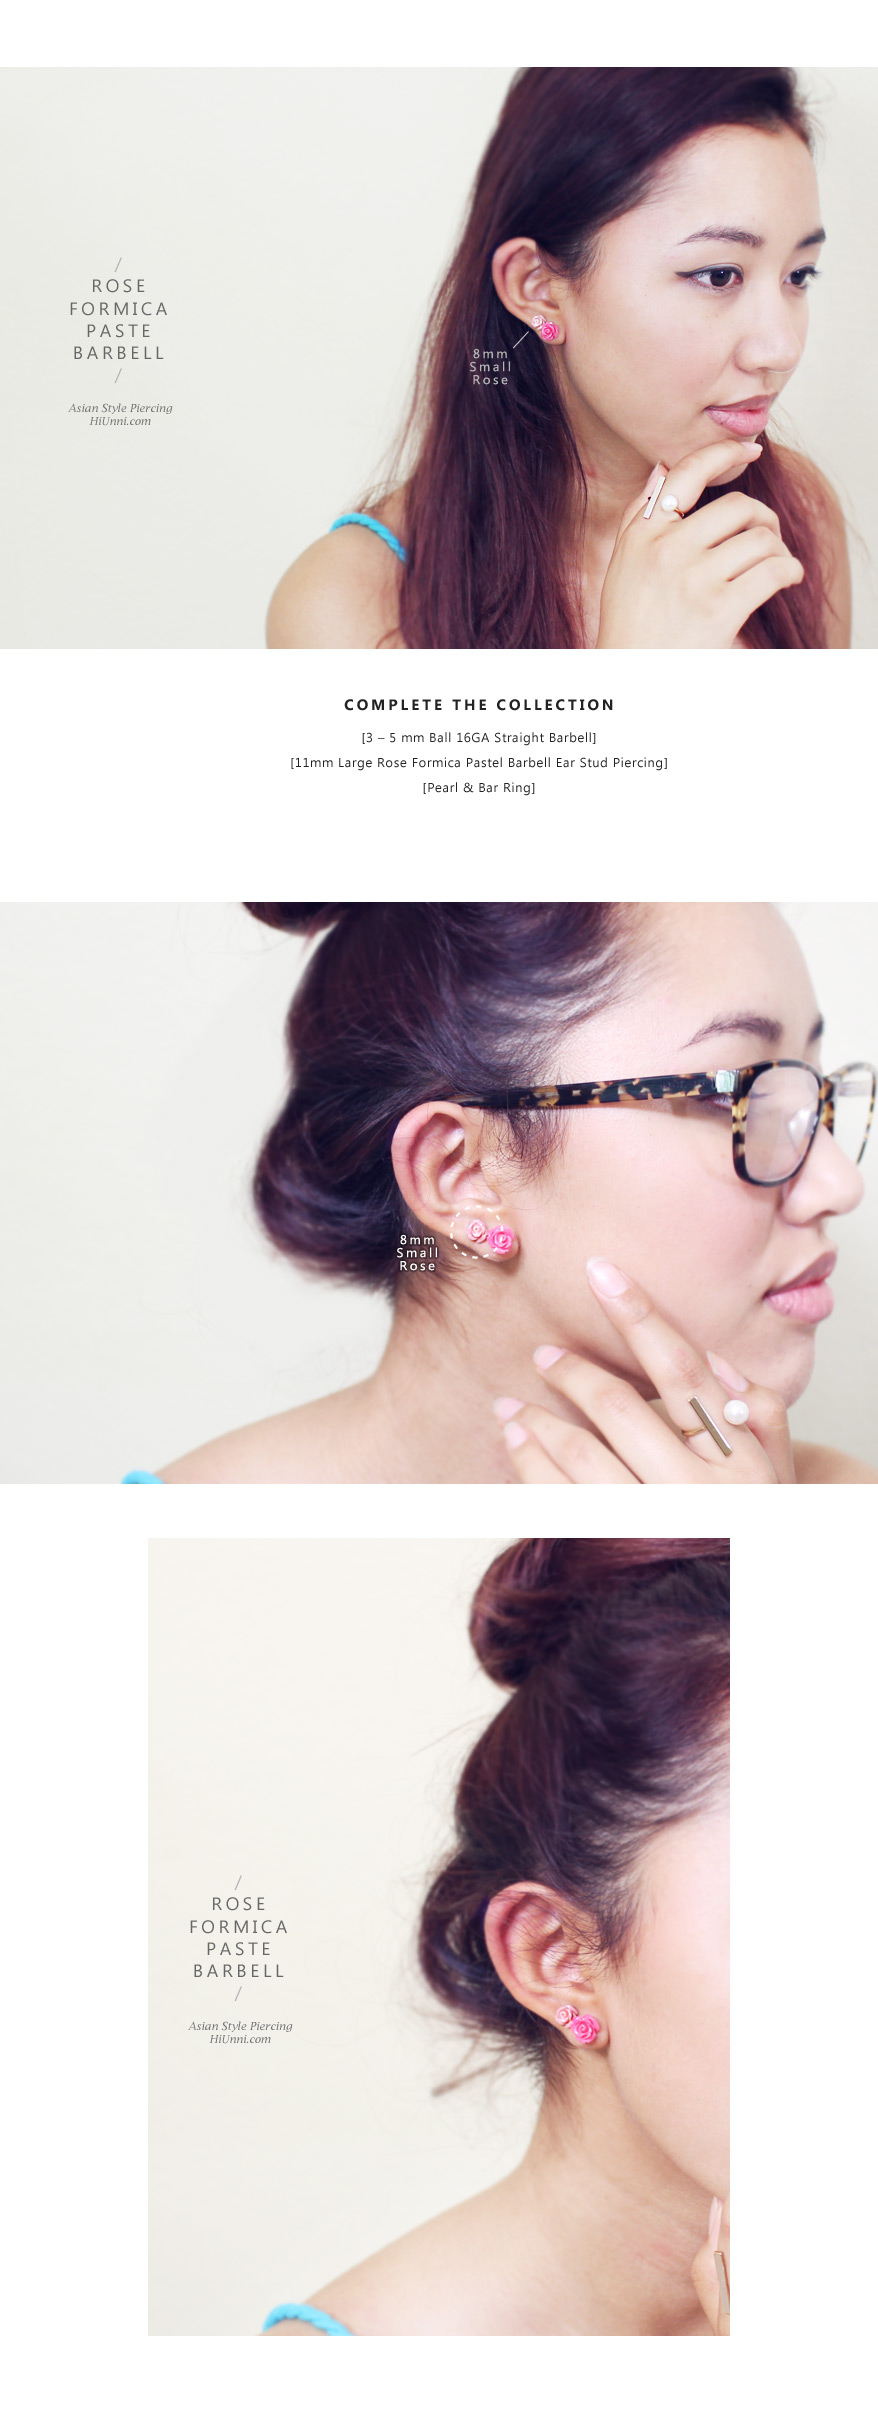 ear_studs_piercing_Cartilage_16g_316l_Stainless_Steel_earring_tragus_korean_asian_style_barbell_flower_floral_Formica_rose_4